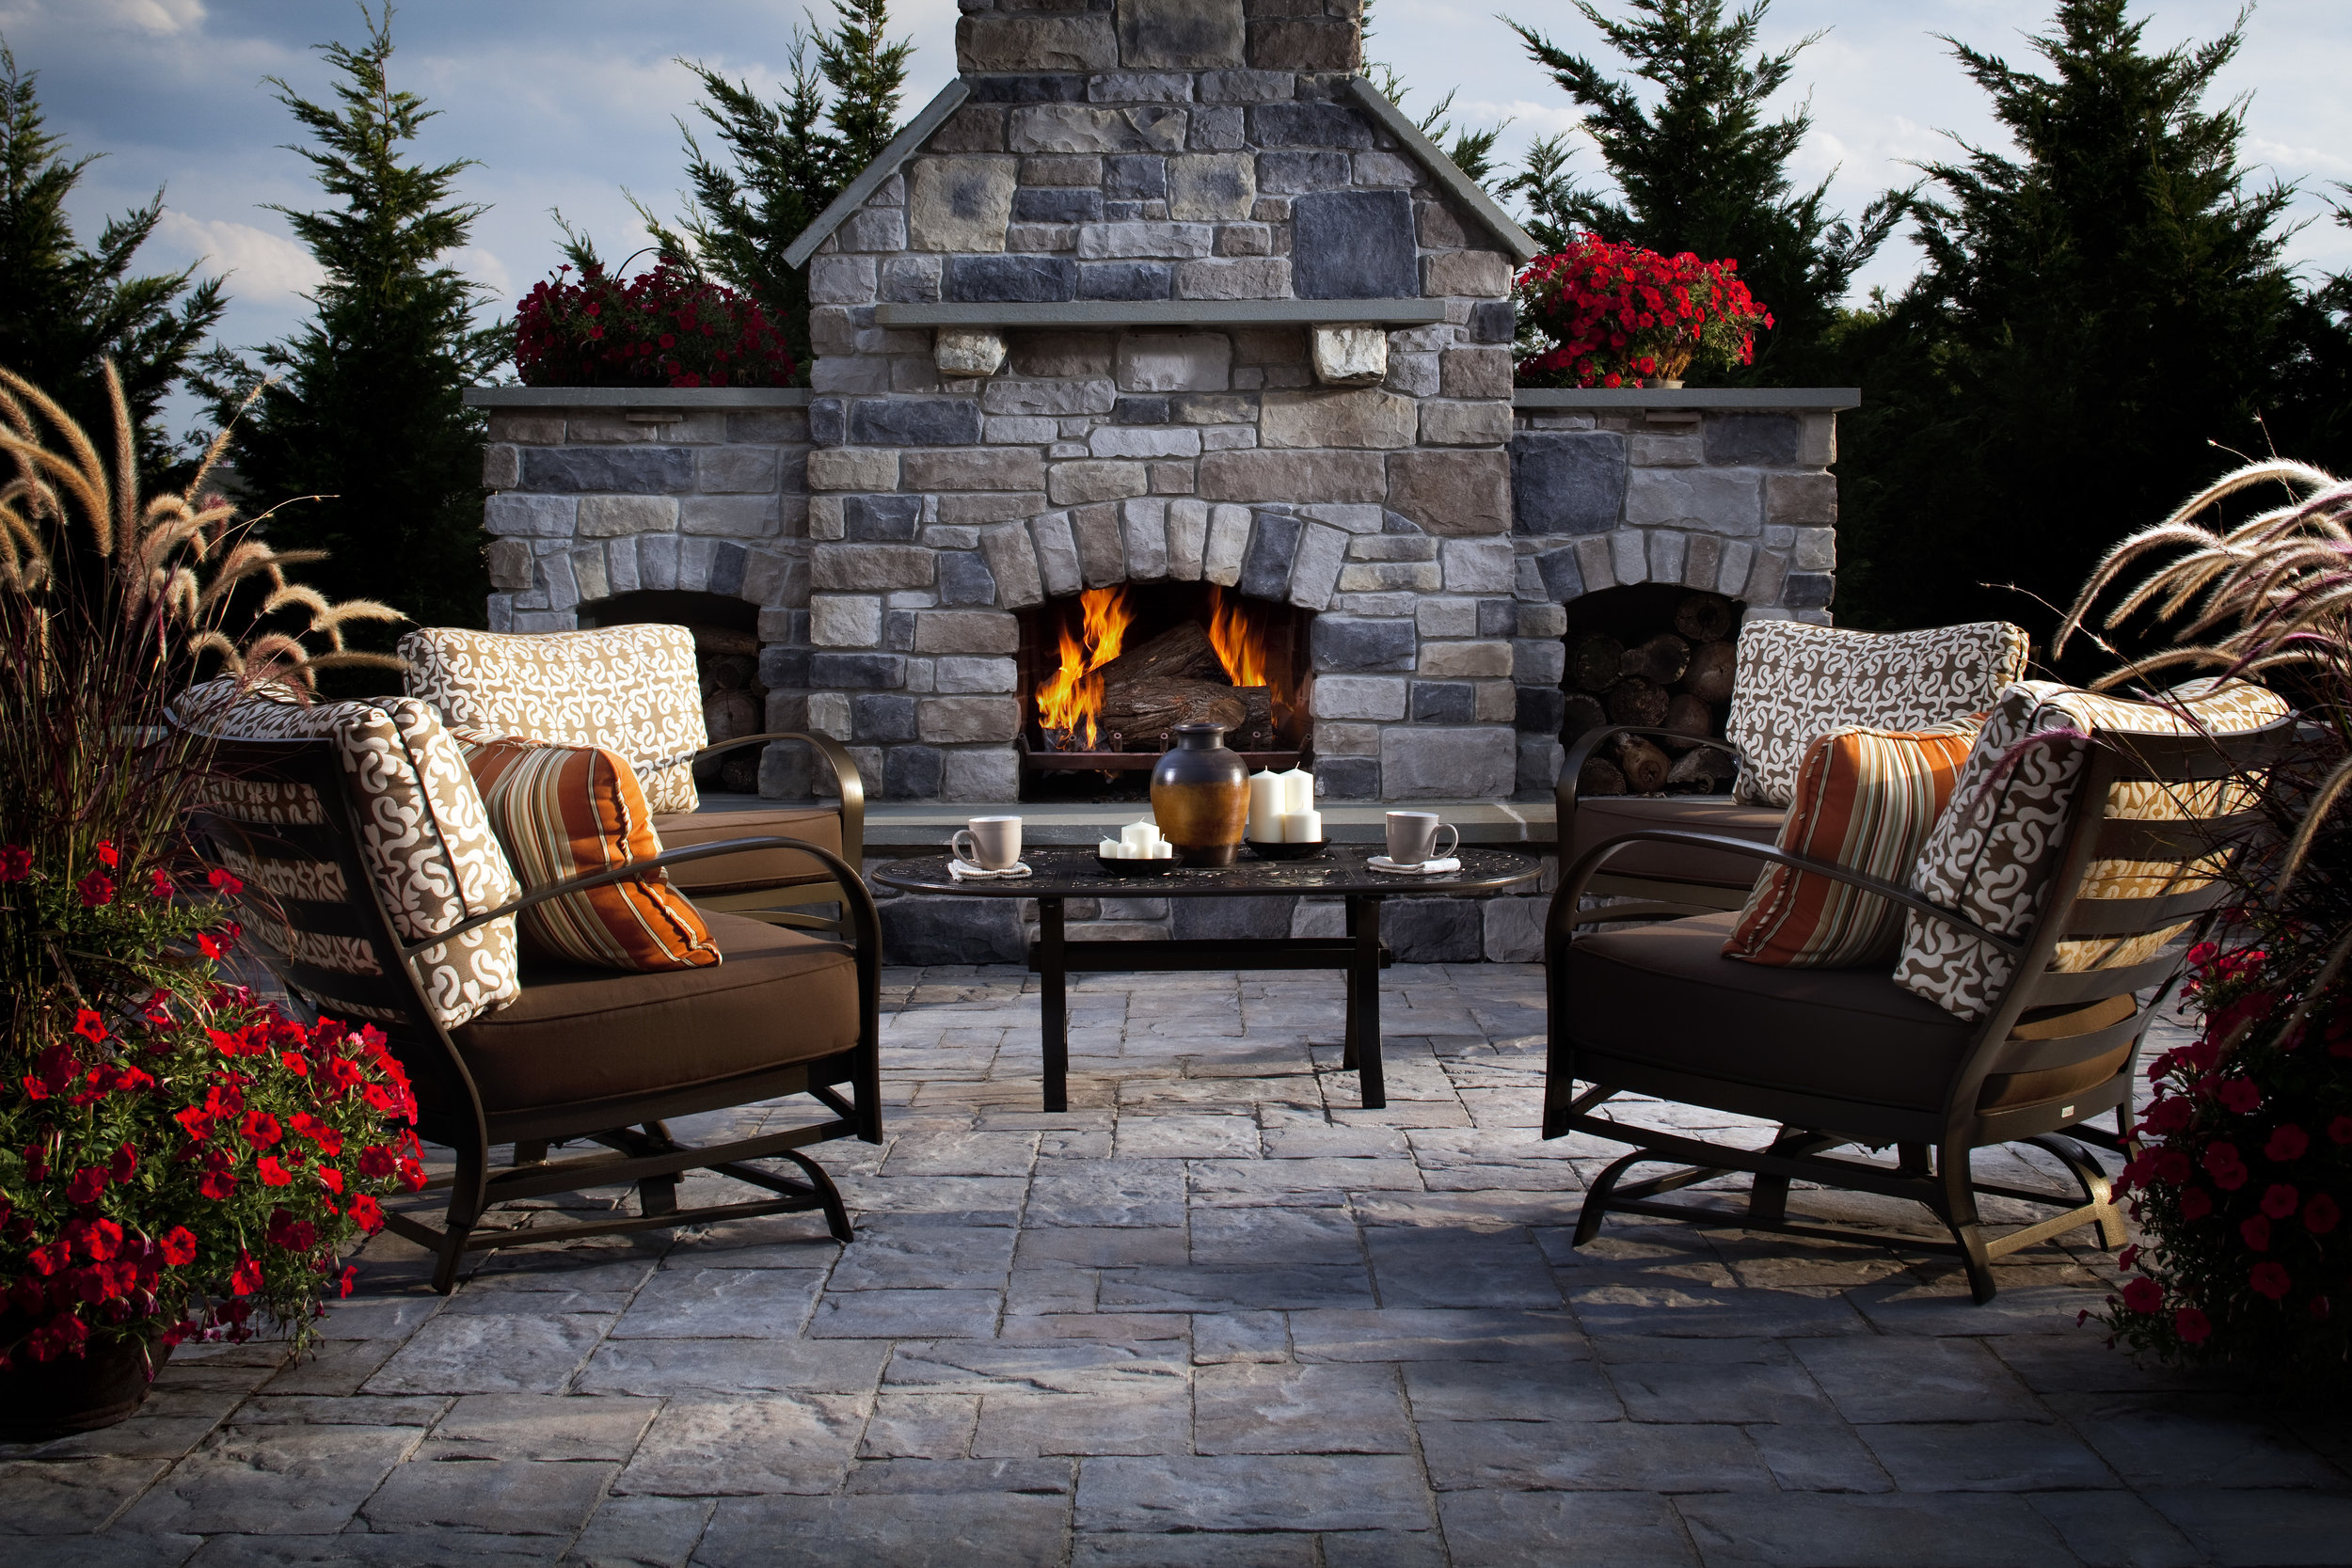 outdoor fireplace patio paver plantings outdoor room paradise relax wood burning natural gas